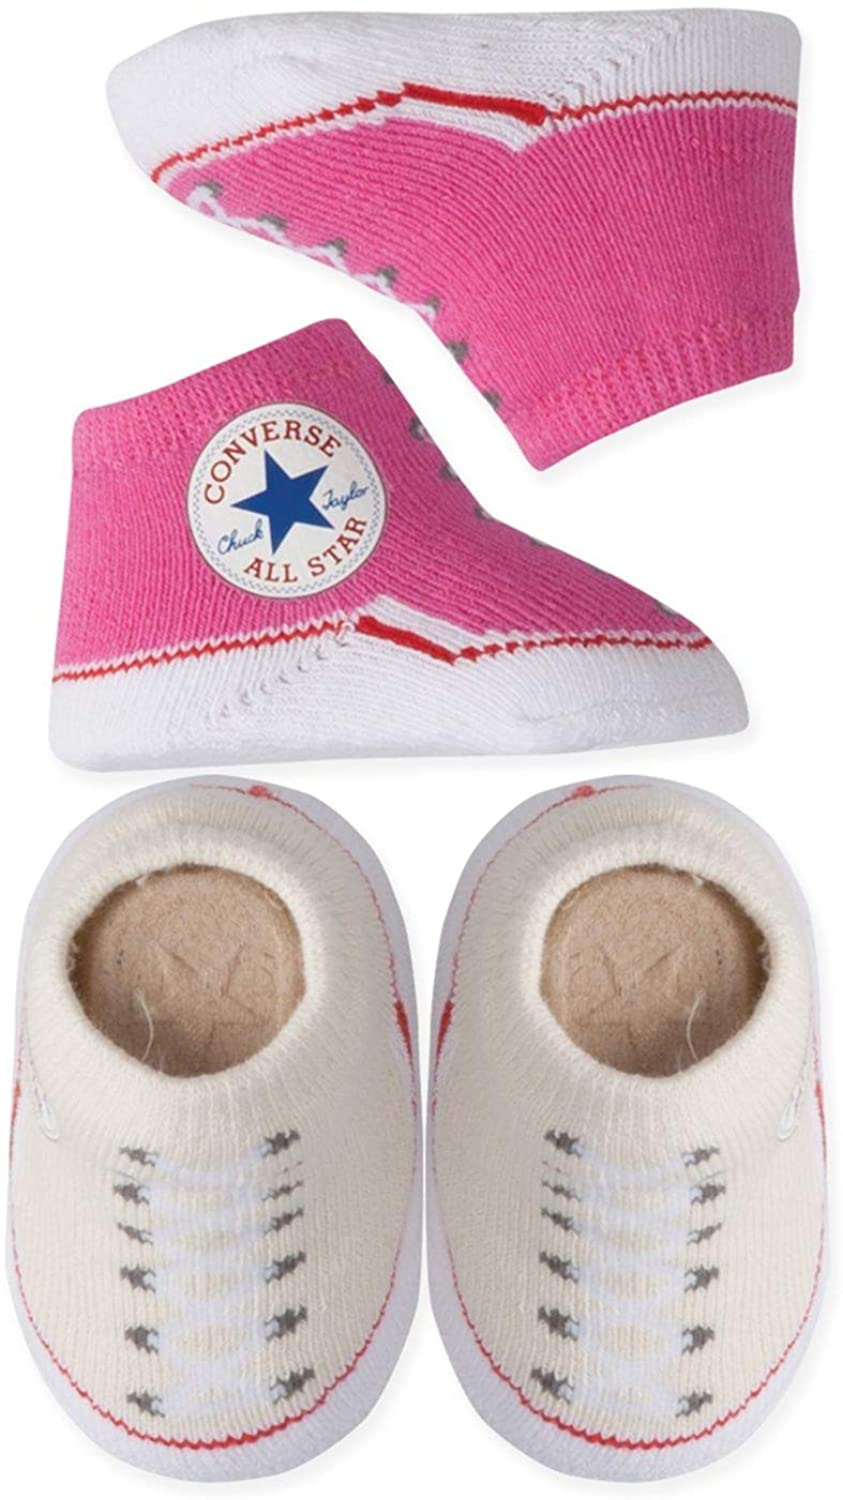 Converse Baby Booties Set Special price for Infant 5 ☆ very popular 0-6 Boys and Months Girls